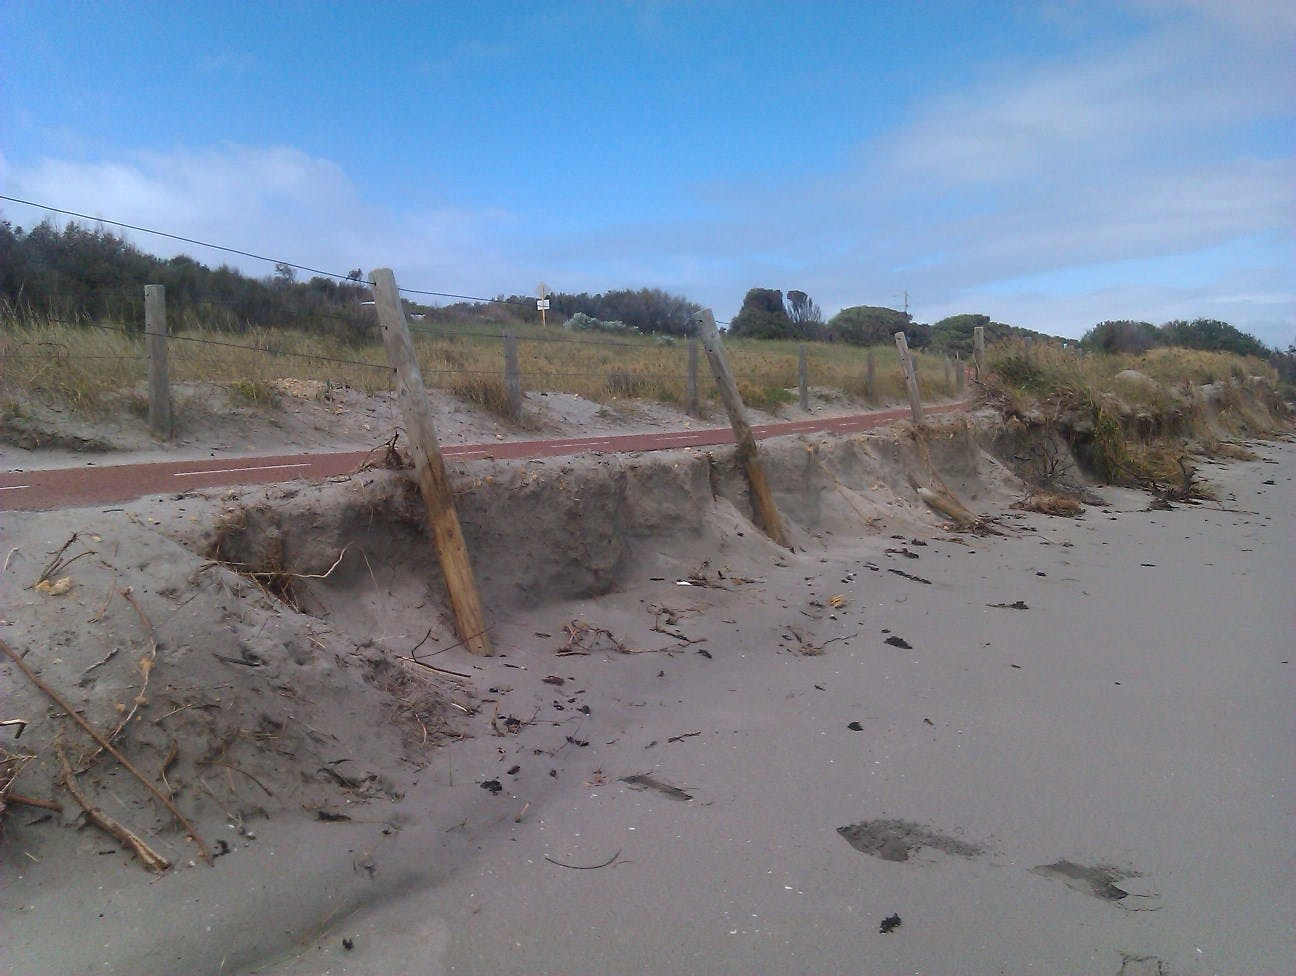 2013 - Erosion at Shared Path